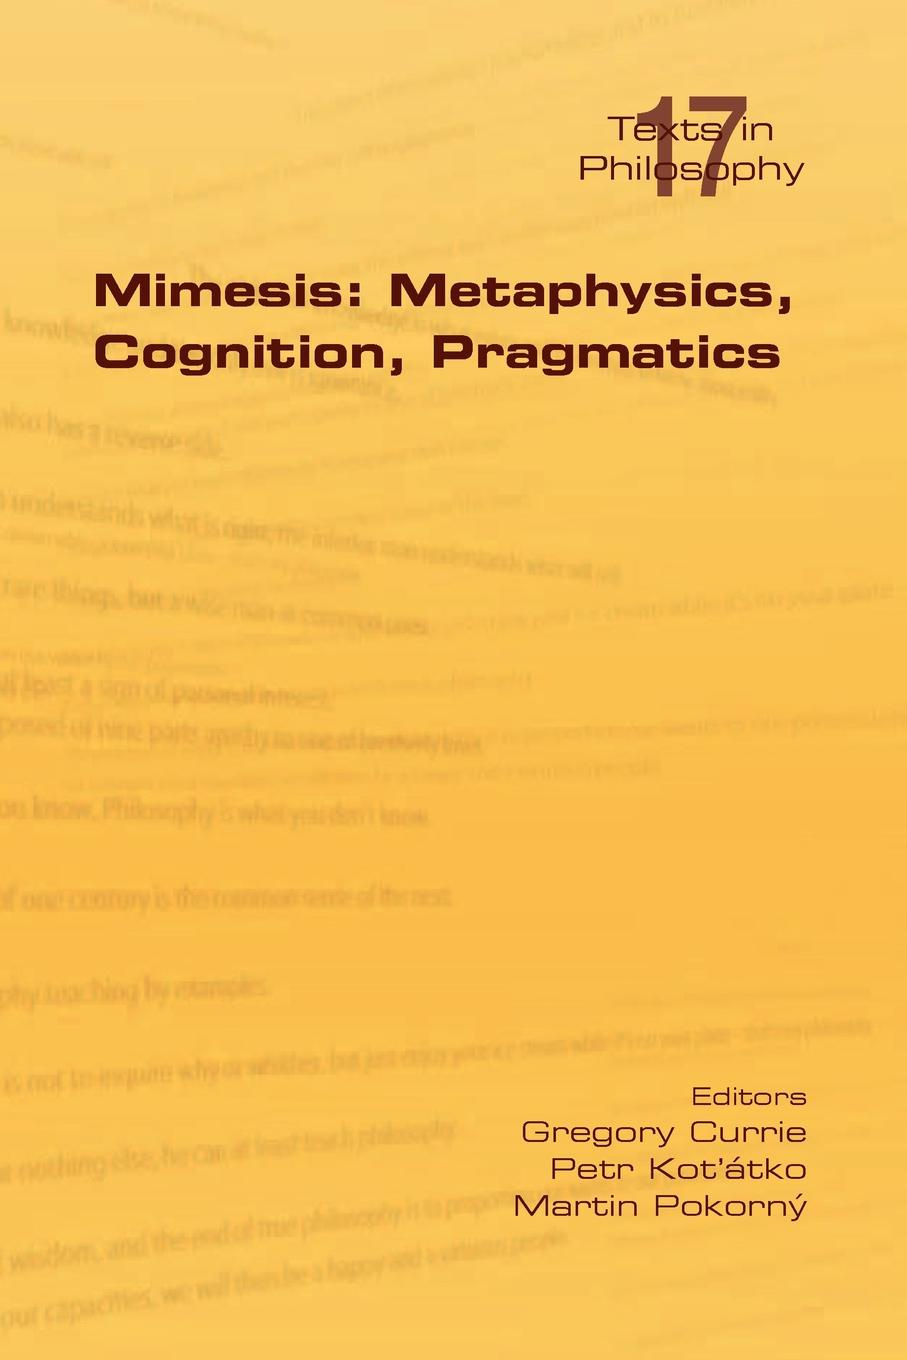 Mimesis. Metaphysics, Cognition, Pragmatics aaron meskin the art of comics a philosophical approach